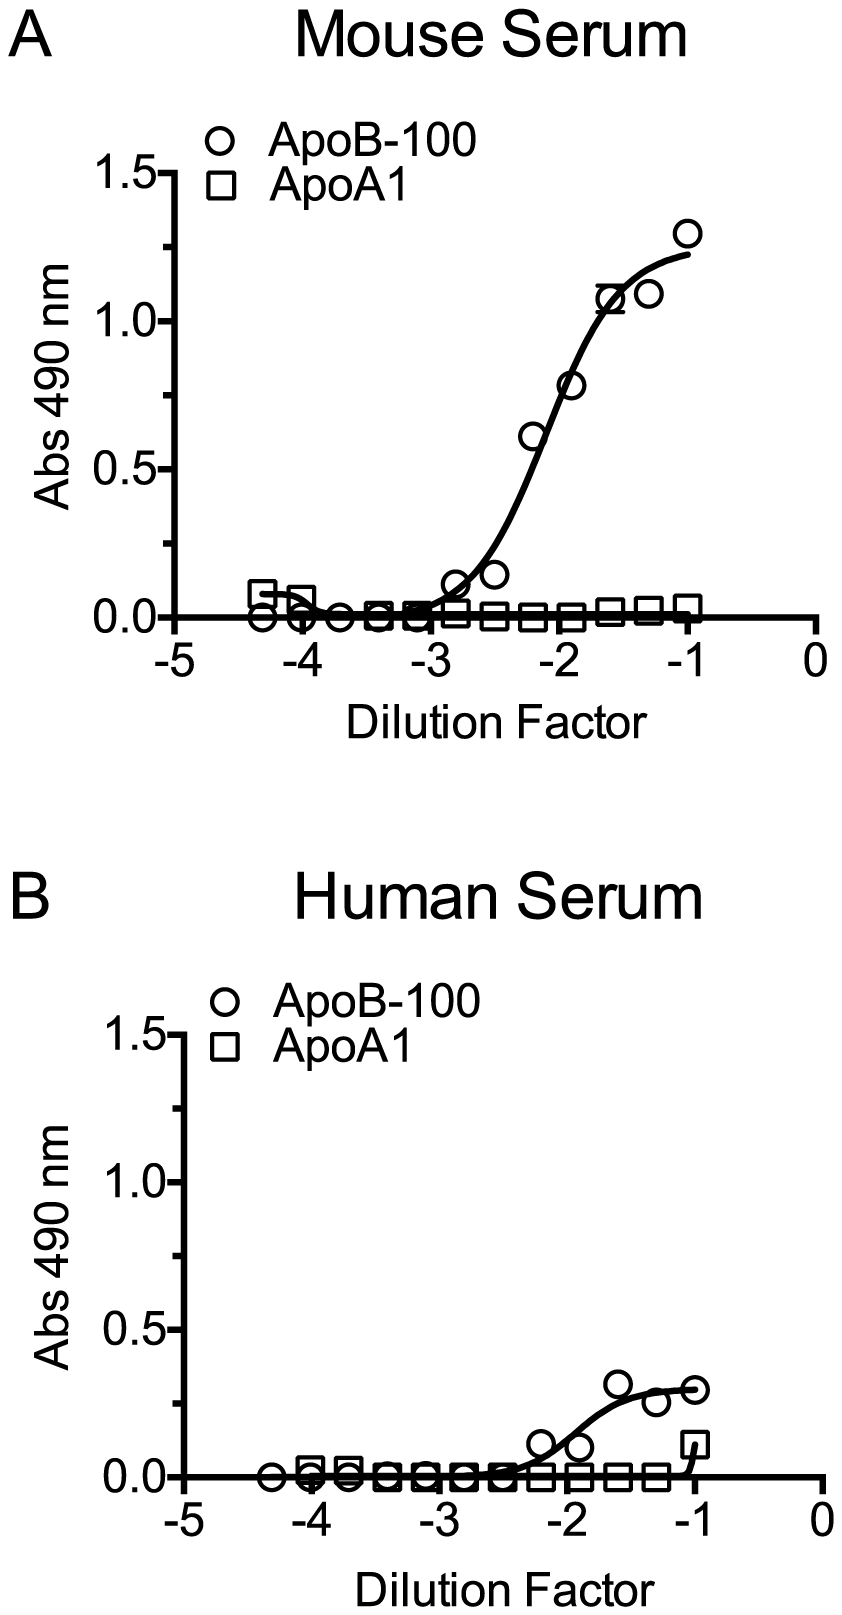 PLY binds to cholesterol carried by ApoB-100 particles in mouse and human sera.